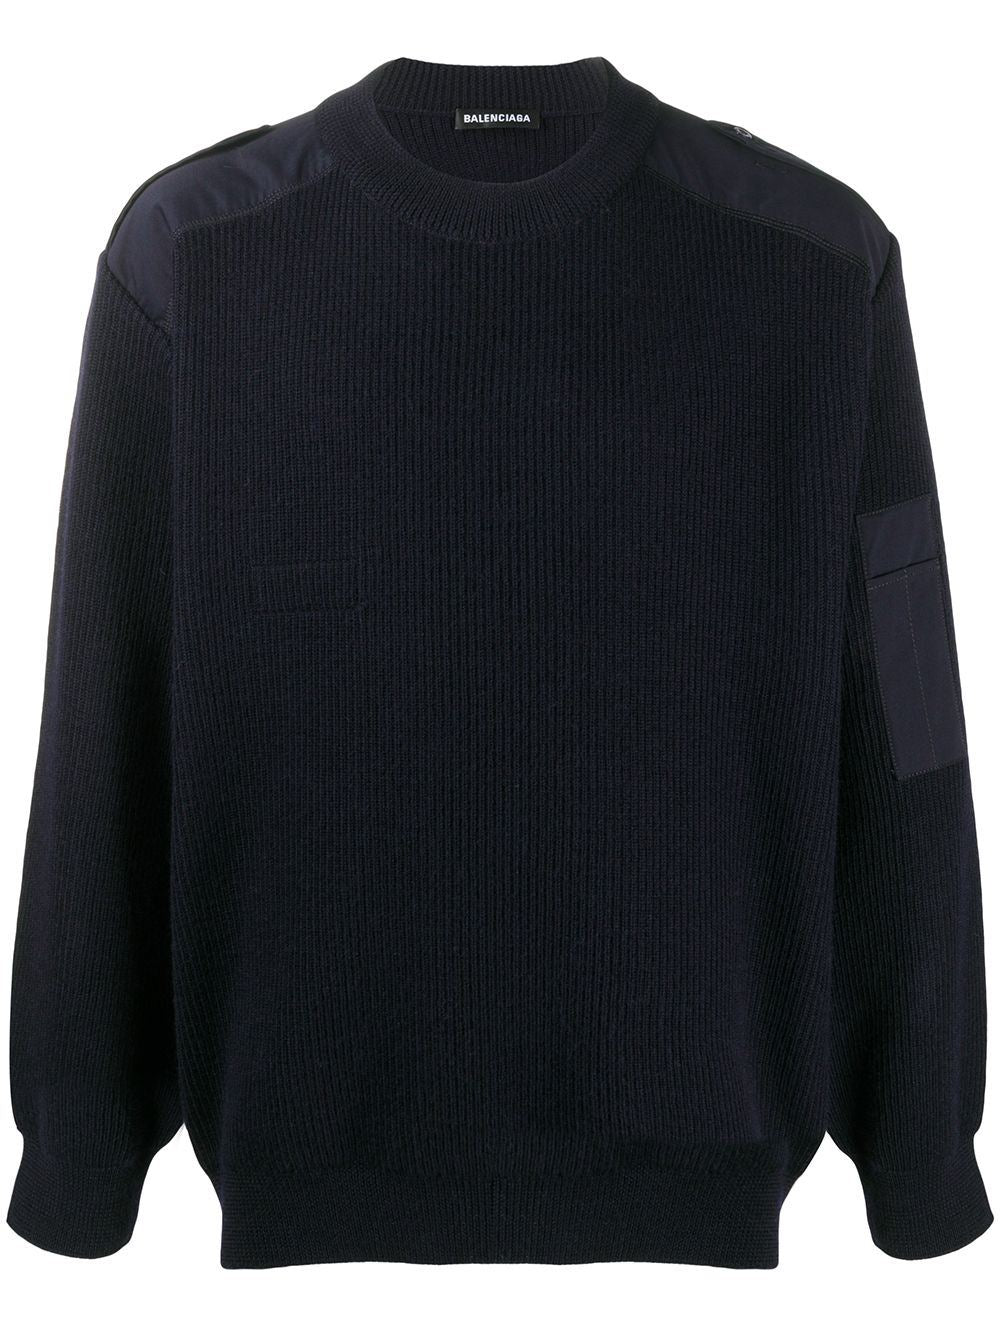 BALENCIAGA logo knitted sweatshirt navy - Maison De Fashion